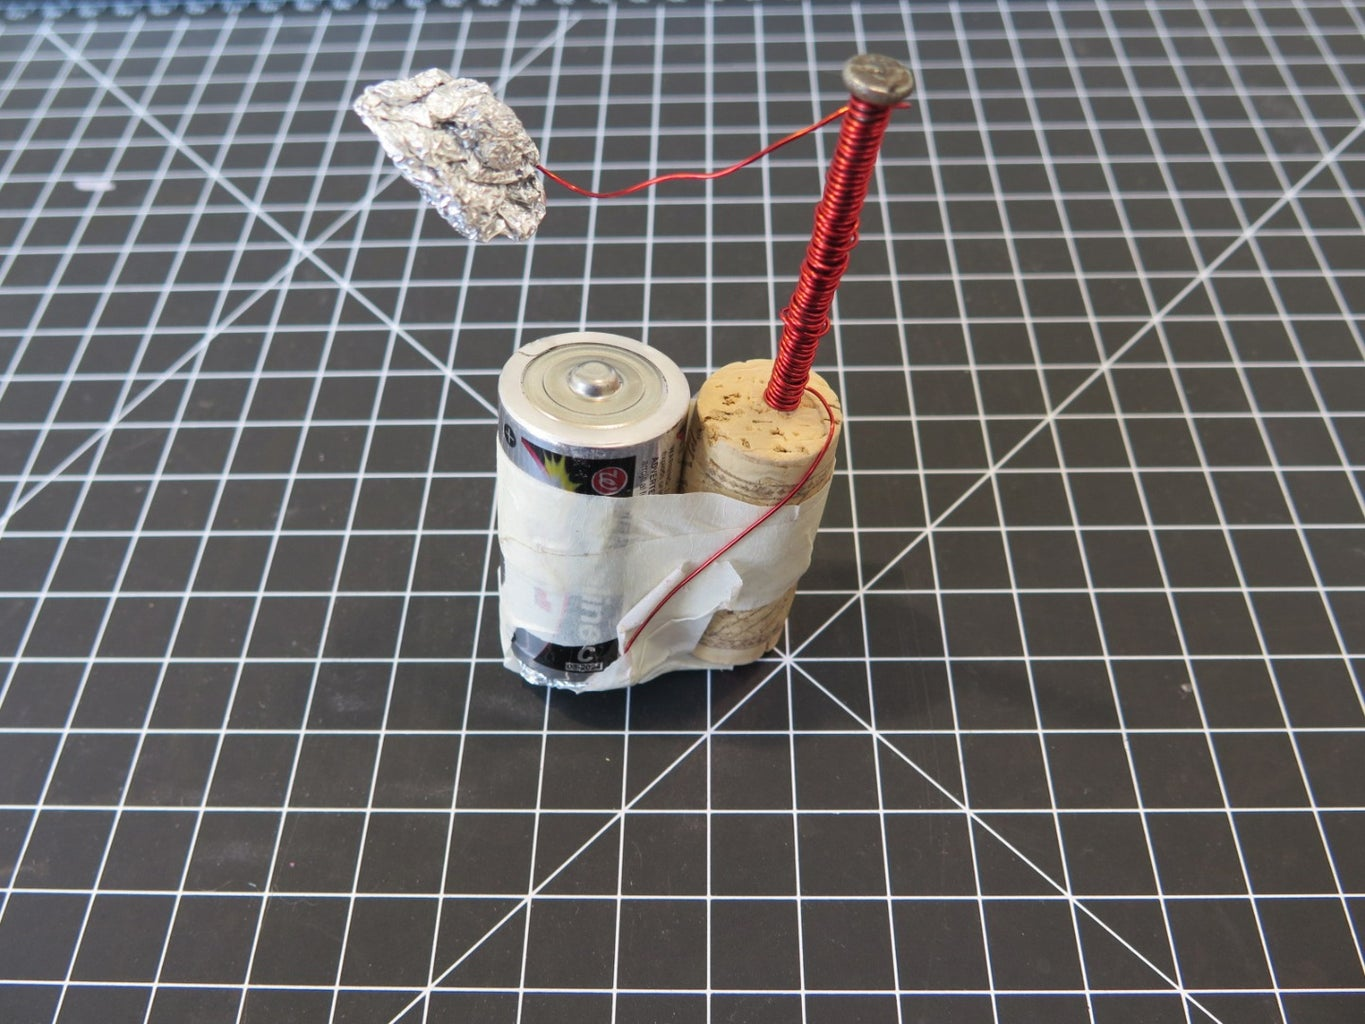 Foil, Wire, and Foil Again